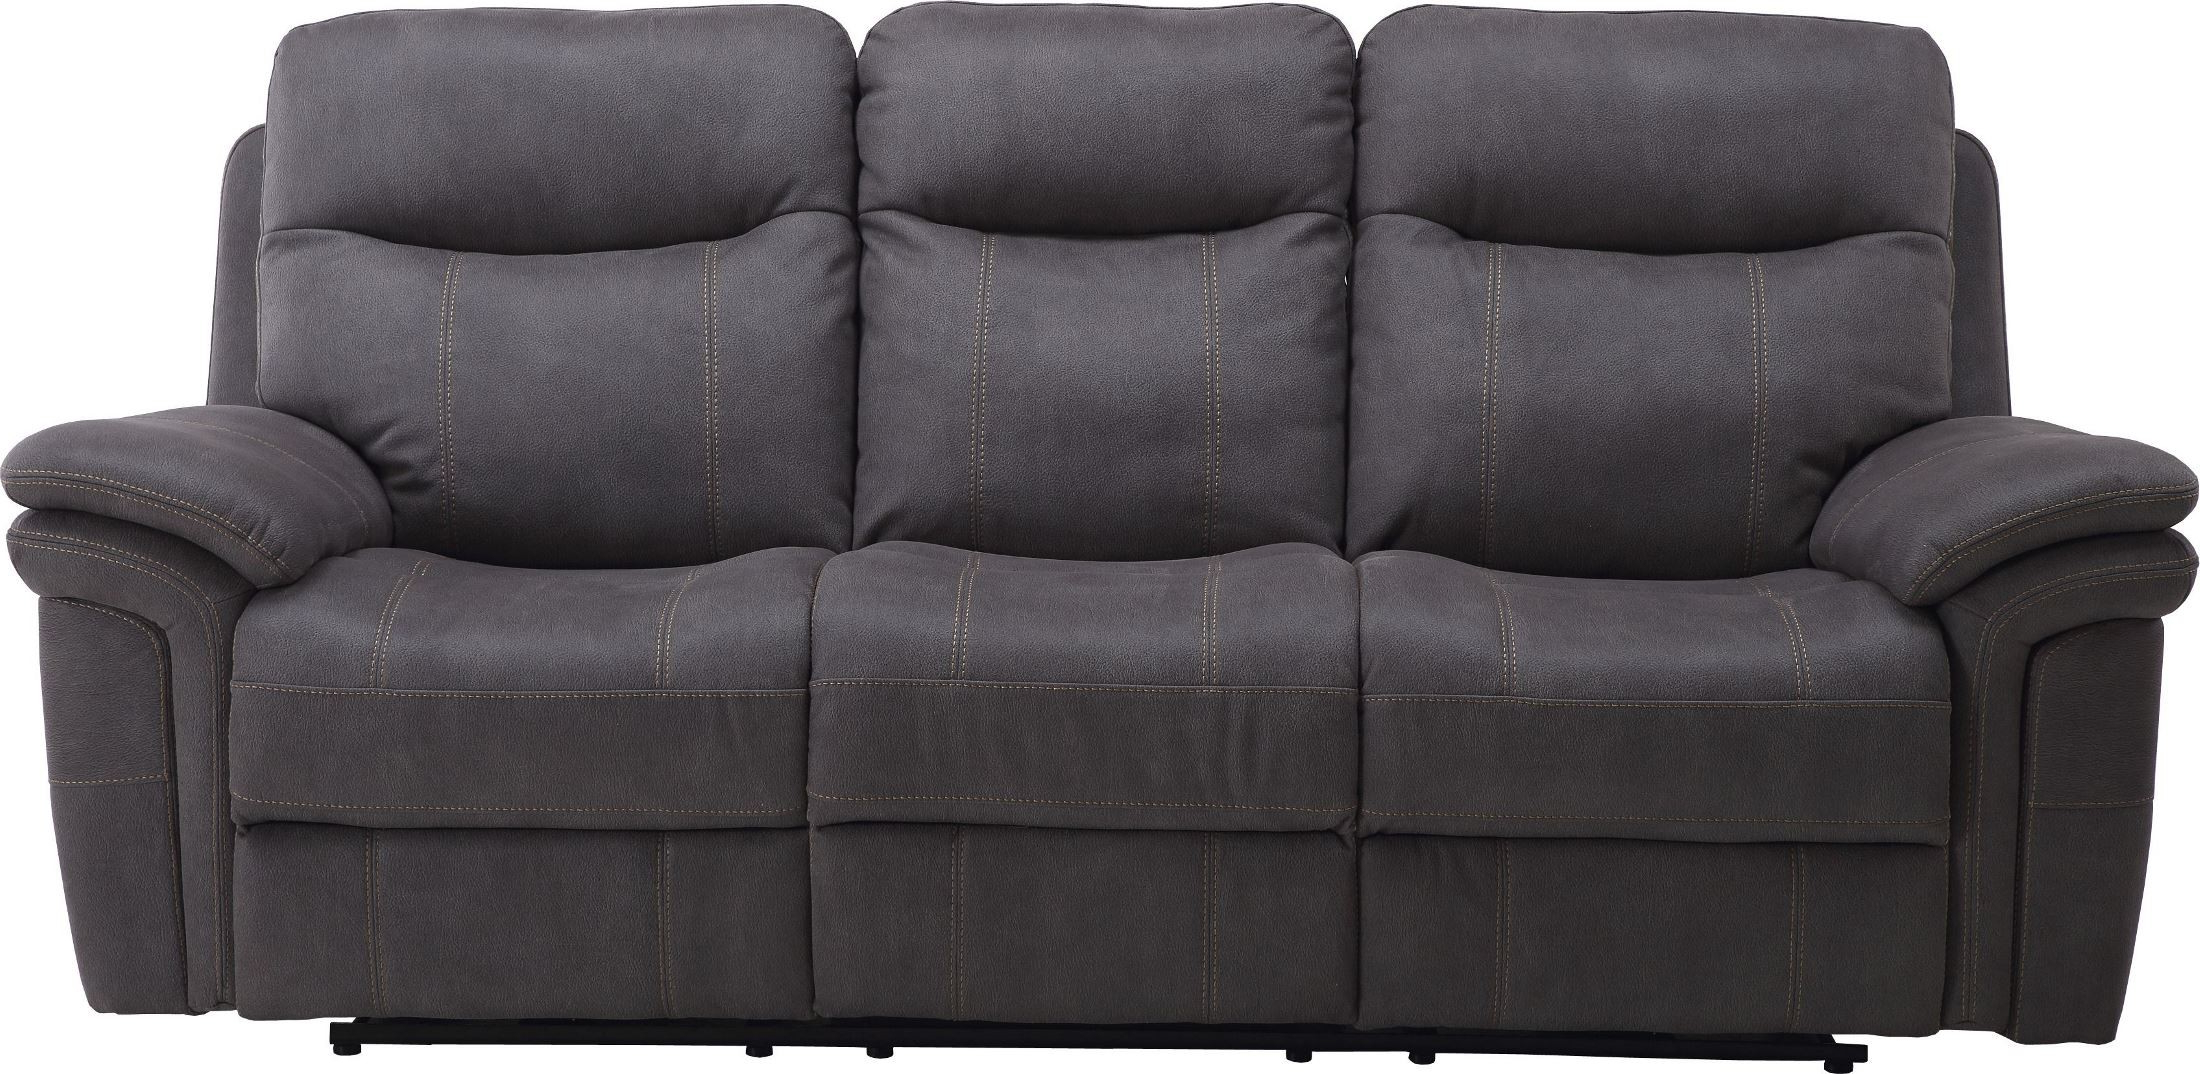 Mason Carbon Dual Power Reclining Sofa From Parker Living Pertaining To Current Dual Power Reclining Sofas (View 13 of 20)